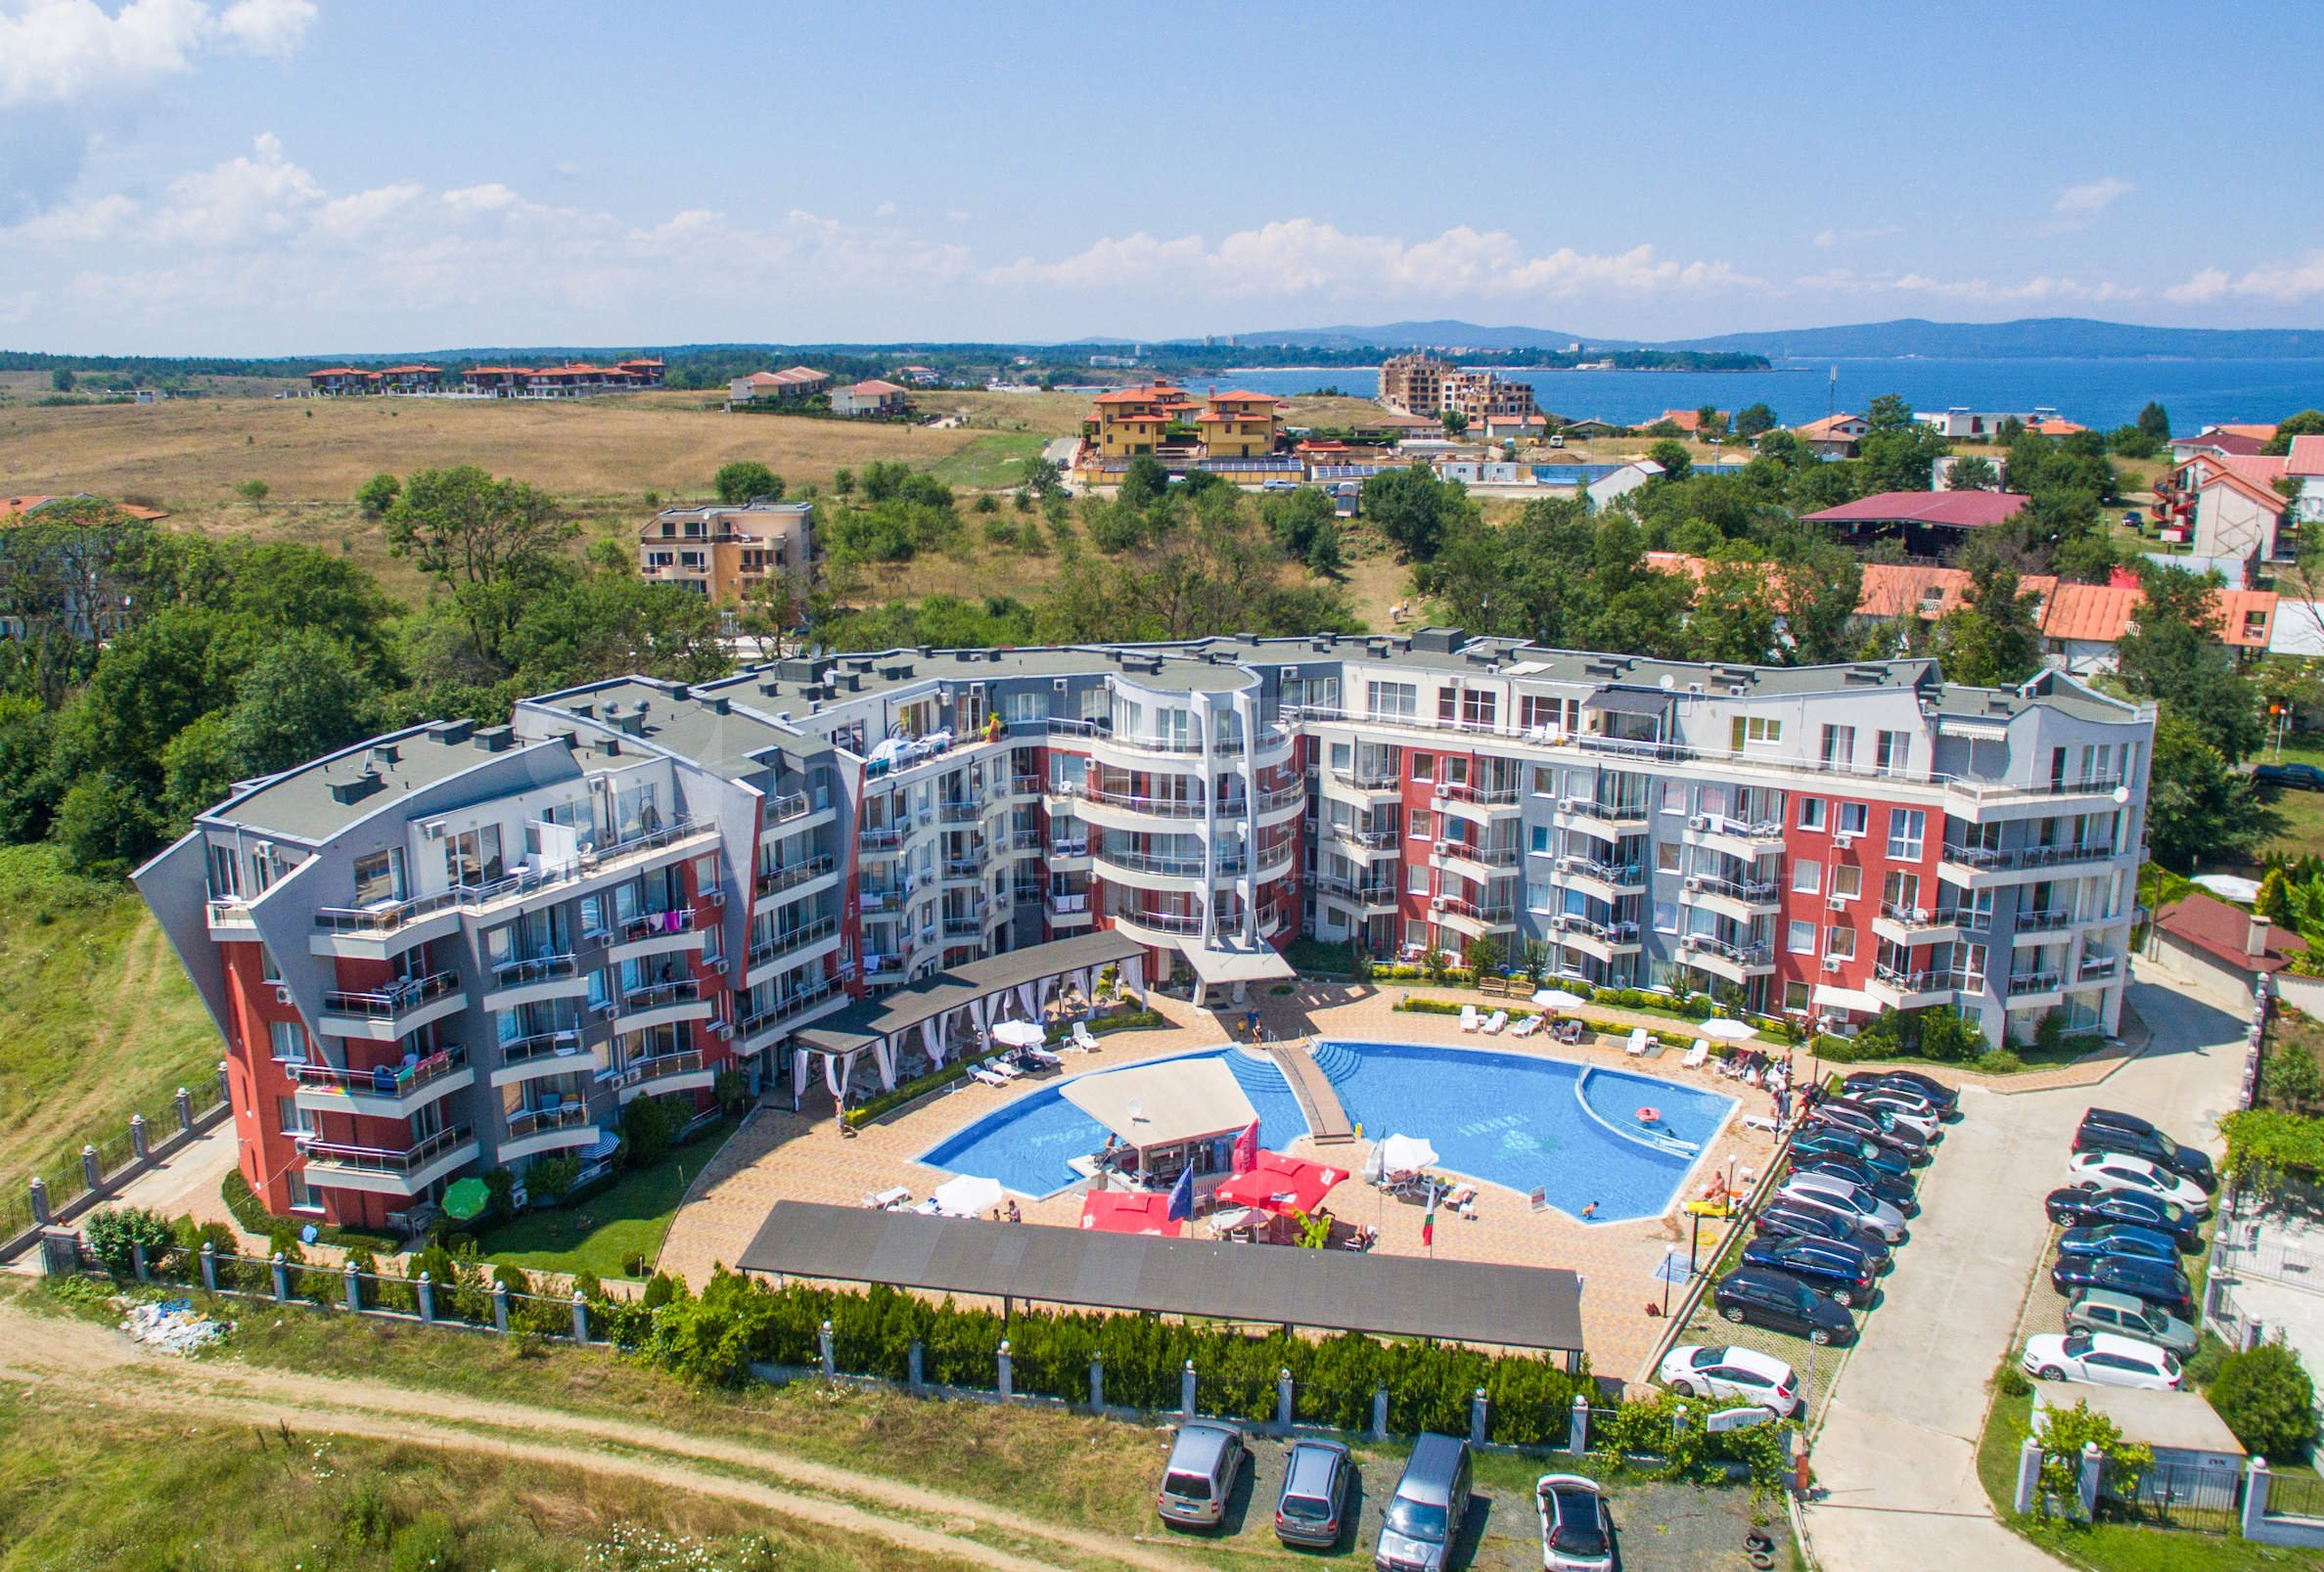 Turn-key ready apartments in Emberli complex, just 3 min. walk from the beach1 - Stonehard